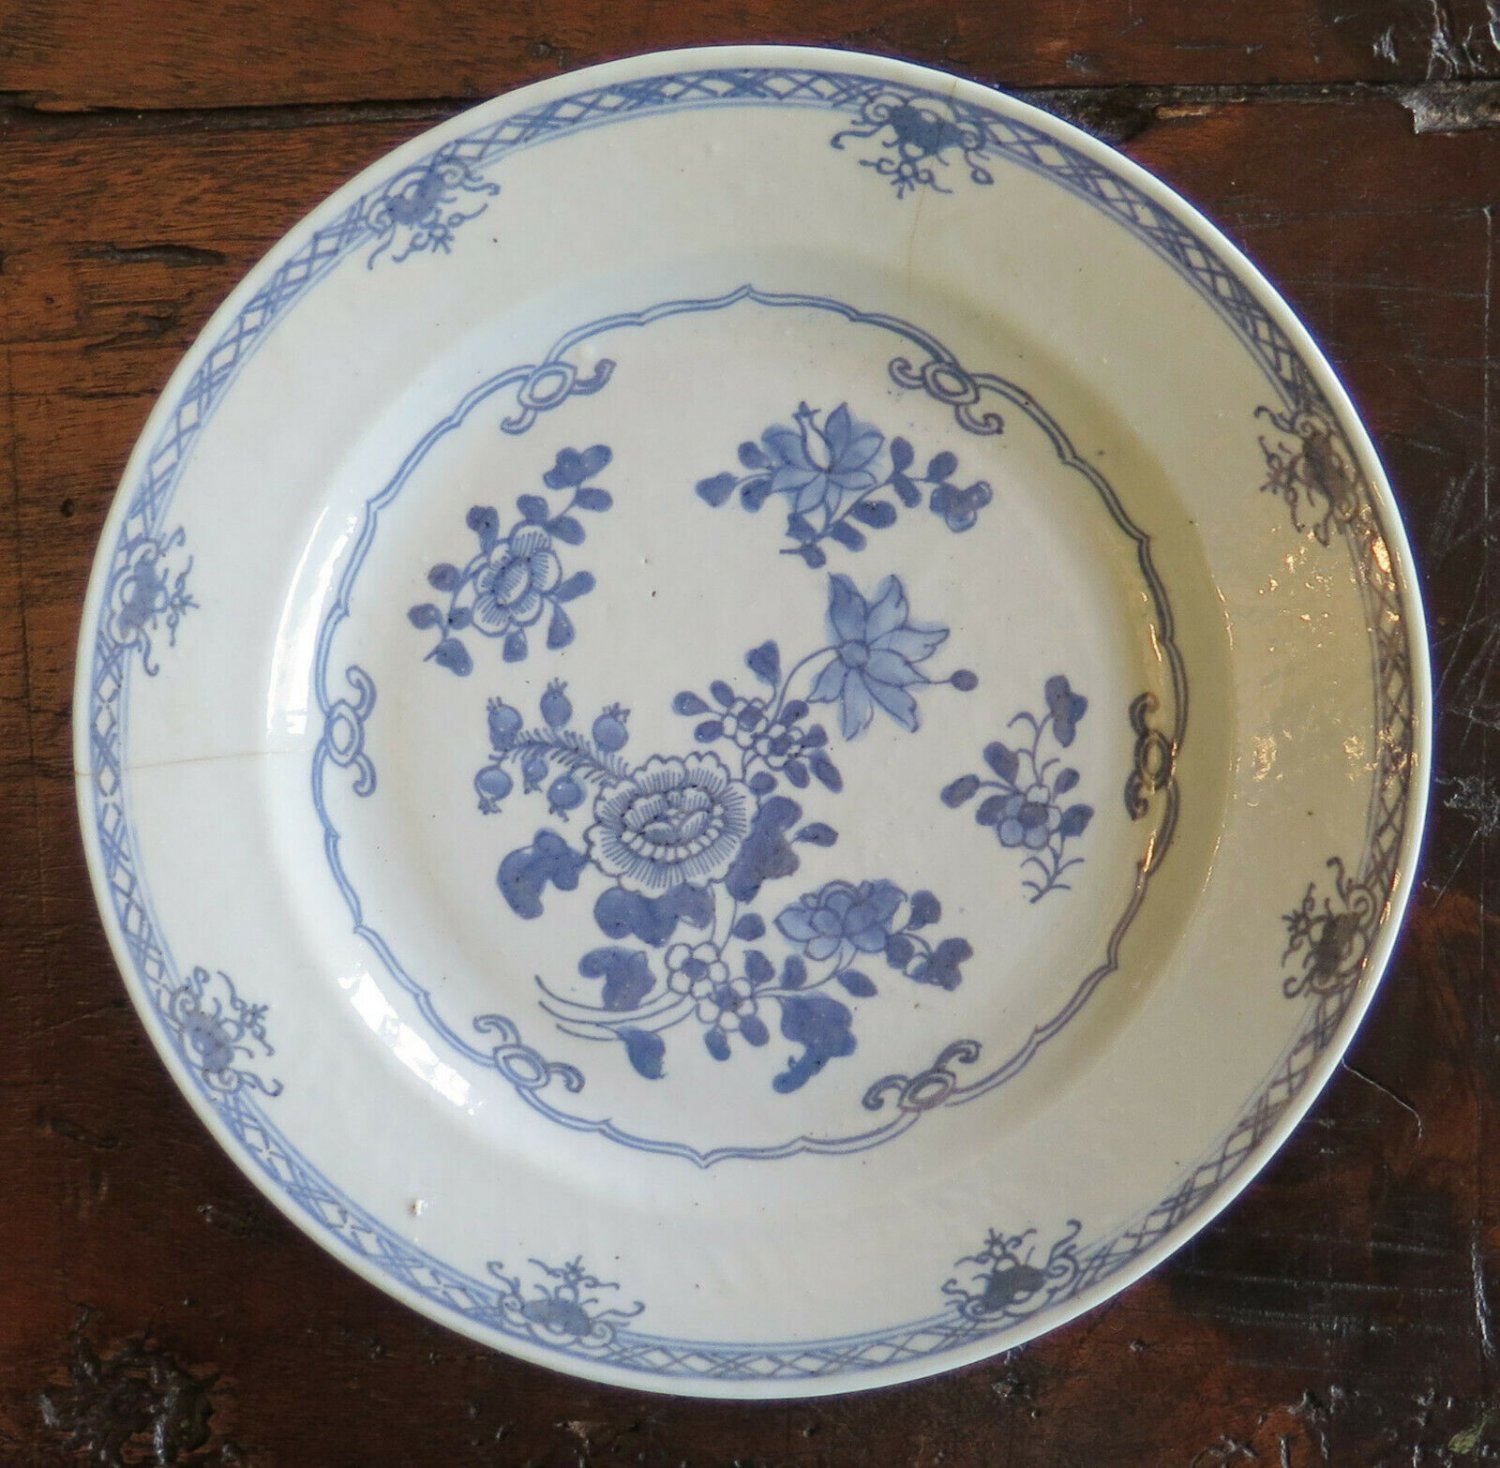 Plate in Ceramic Antique White Blue Chinese Period XVIII Hand Painted MM